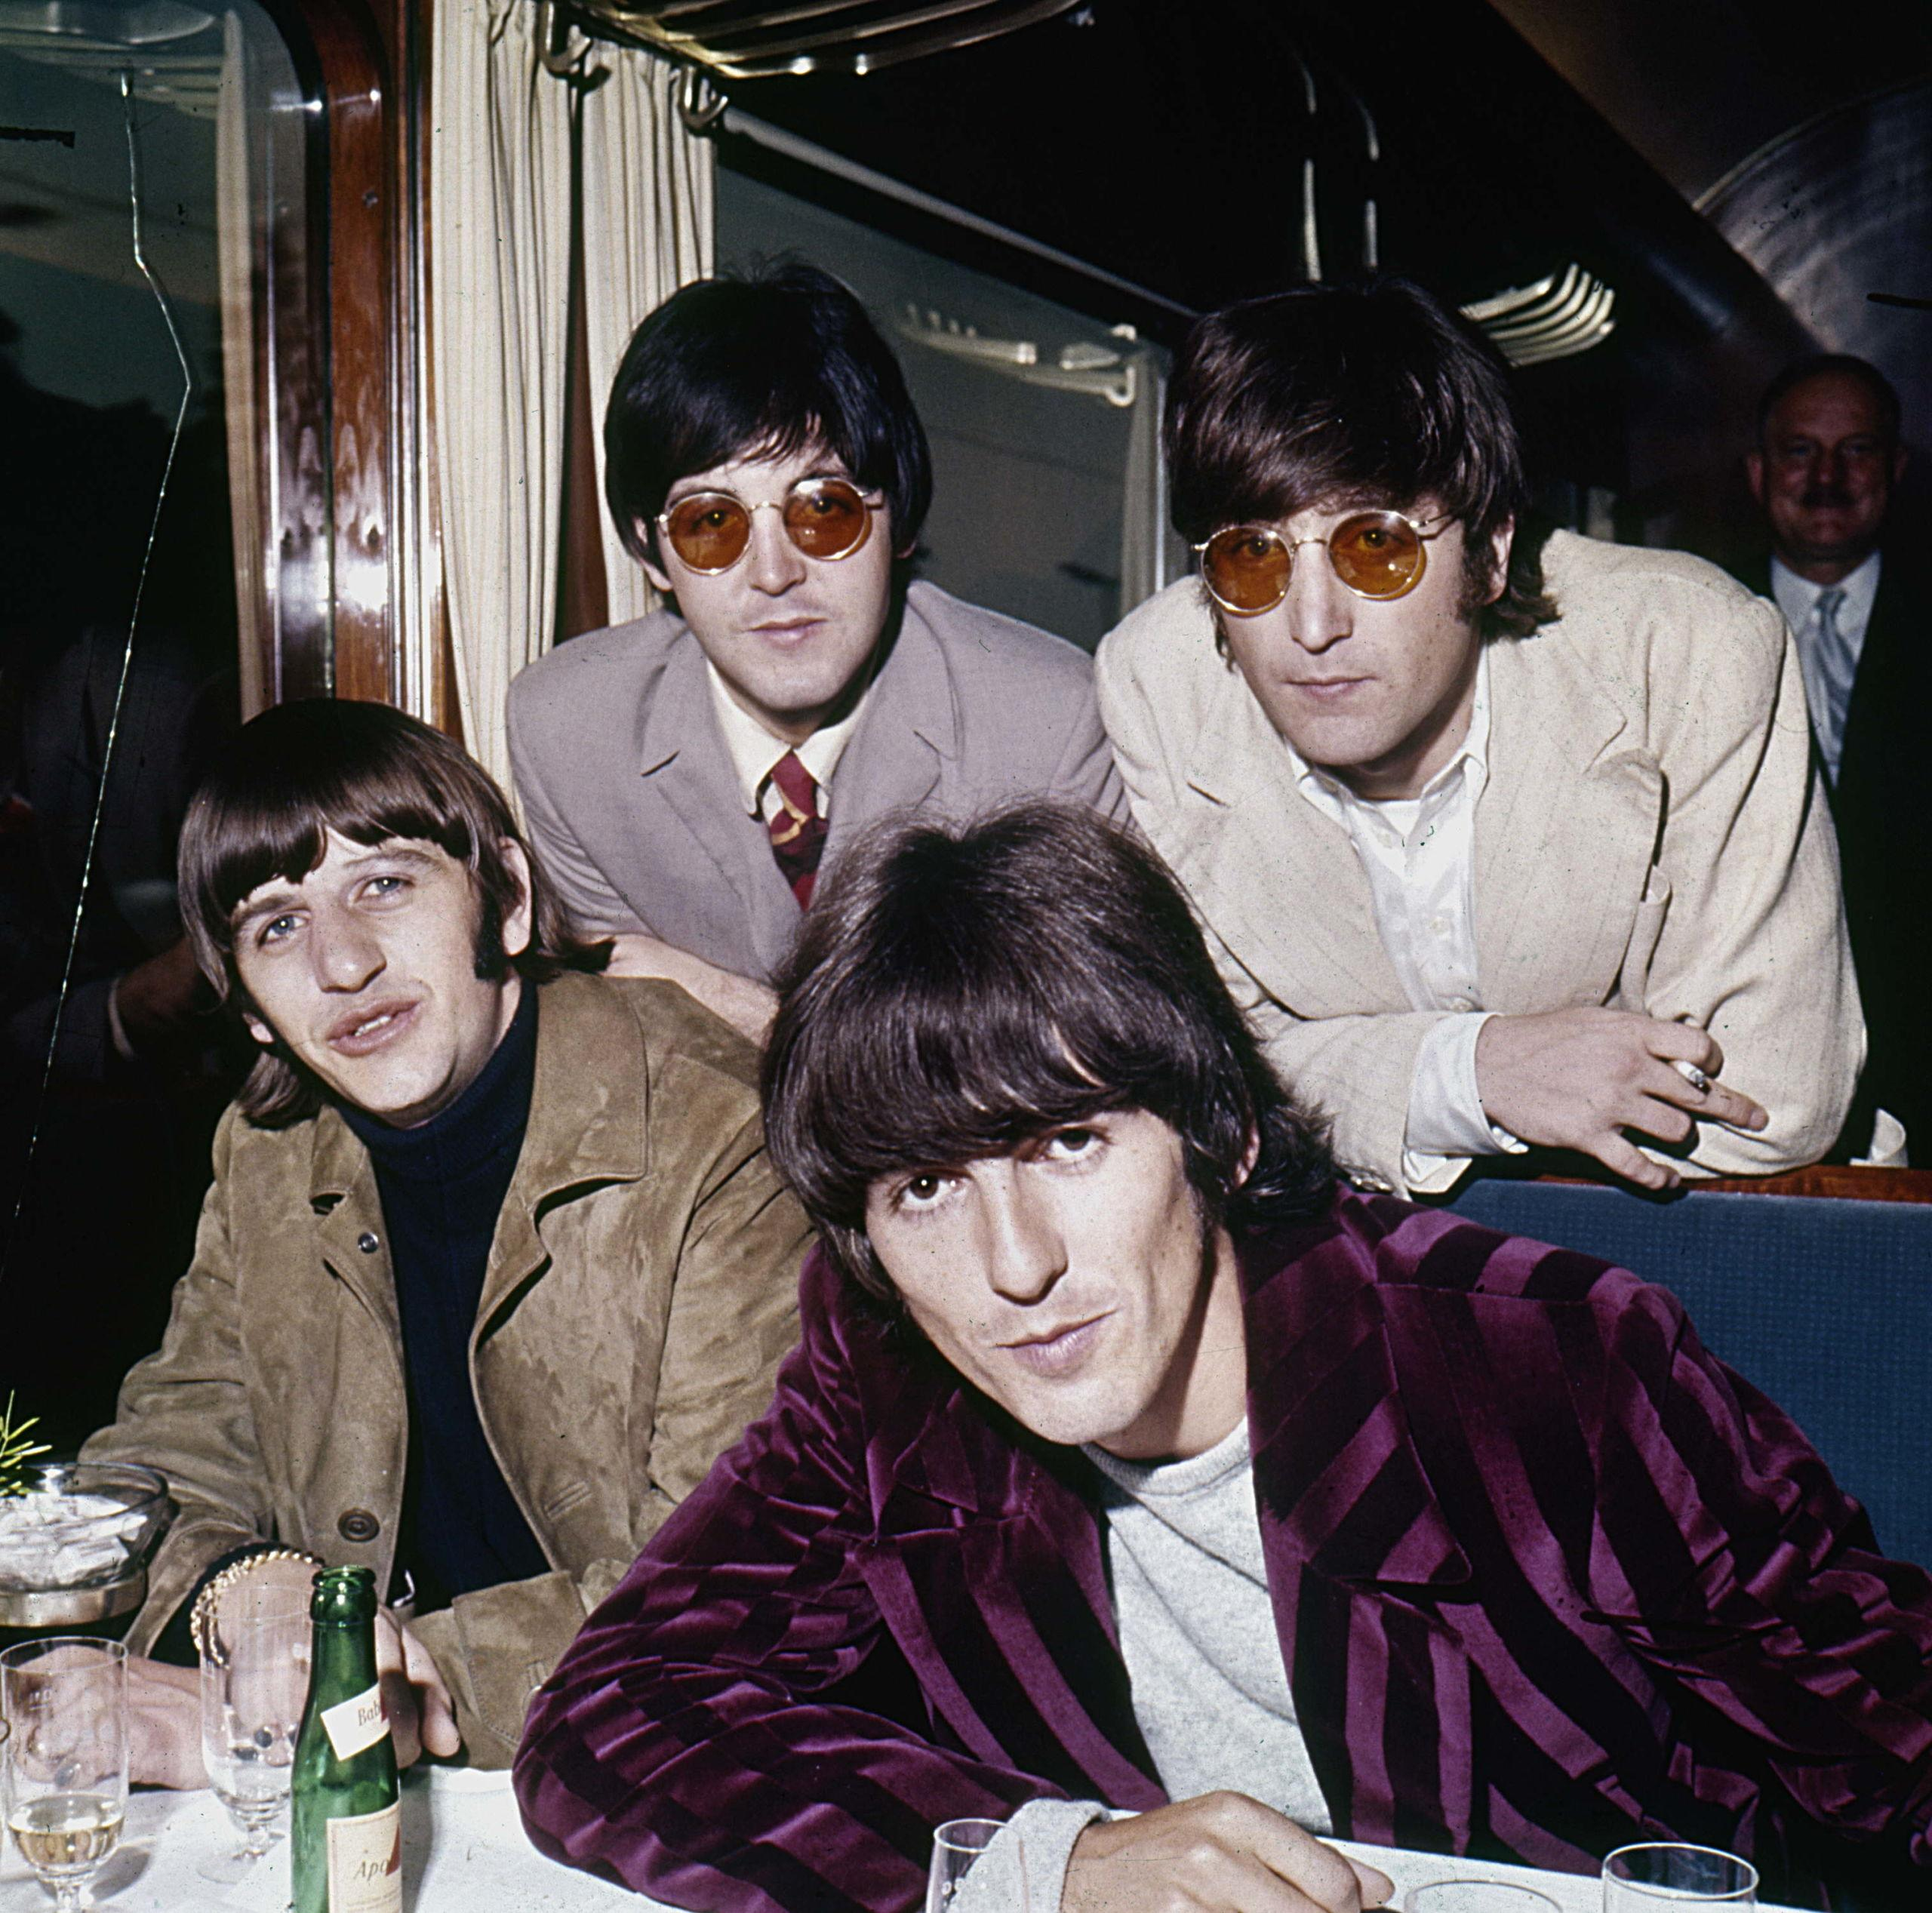 """<p>After high school, John Lennon, Paul McCartney, George Harrison, Pete Best, and Stuart Sutcliffe spent time in Hamburg, a period that Harrison <a href=""""http://www.telegraph.co.uk/travel/artsandculture/7949677/The-Beatles-in-Hamburg-50-years-on-from-the-bands-first-concert.html"""" rel=""""nofollow noopener"""" target=""""_blank"""" data-ylk=""""slk:called"""" class=""""link rapid-noclick-resp"""">called</a> their """"apprenticeship."""" The German city is where the group made their first recording and first played with Ringo Starr, another lad from Liverpool who would eventually replace Best as the rock group's drummer. """"I was born in Liverpool but grew up in Hamburg,"""" Lennon has <a href=""""https://www.gapyear.com/articles/197560/super-celebs-who-have-taken-a-gap-year"""" rel=""""nofollow noopener"""" target=""""_blank"""" data-ylk=""""slk:said"""" class=""""link rapid-noclick-resp"""">said</a>.</p>"""